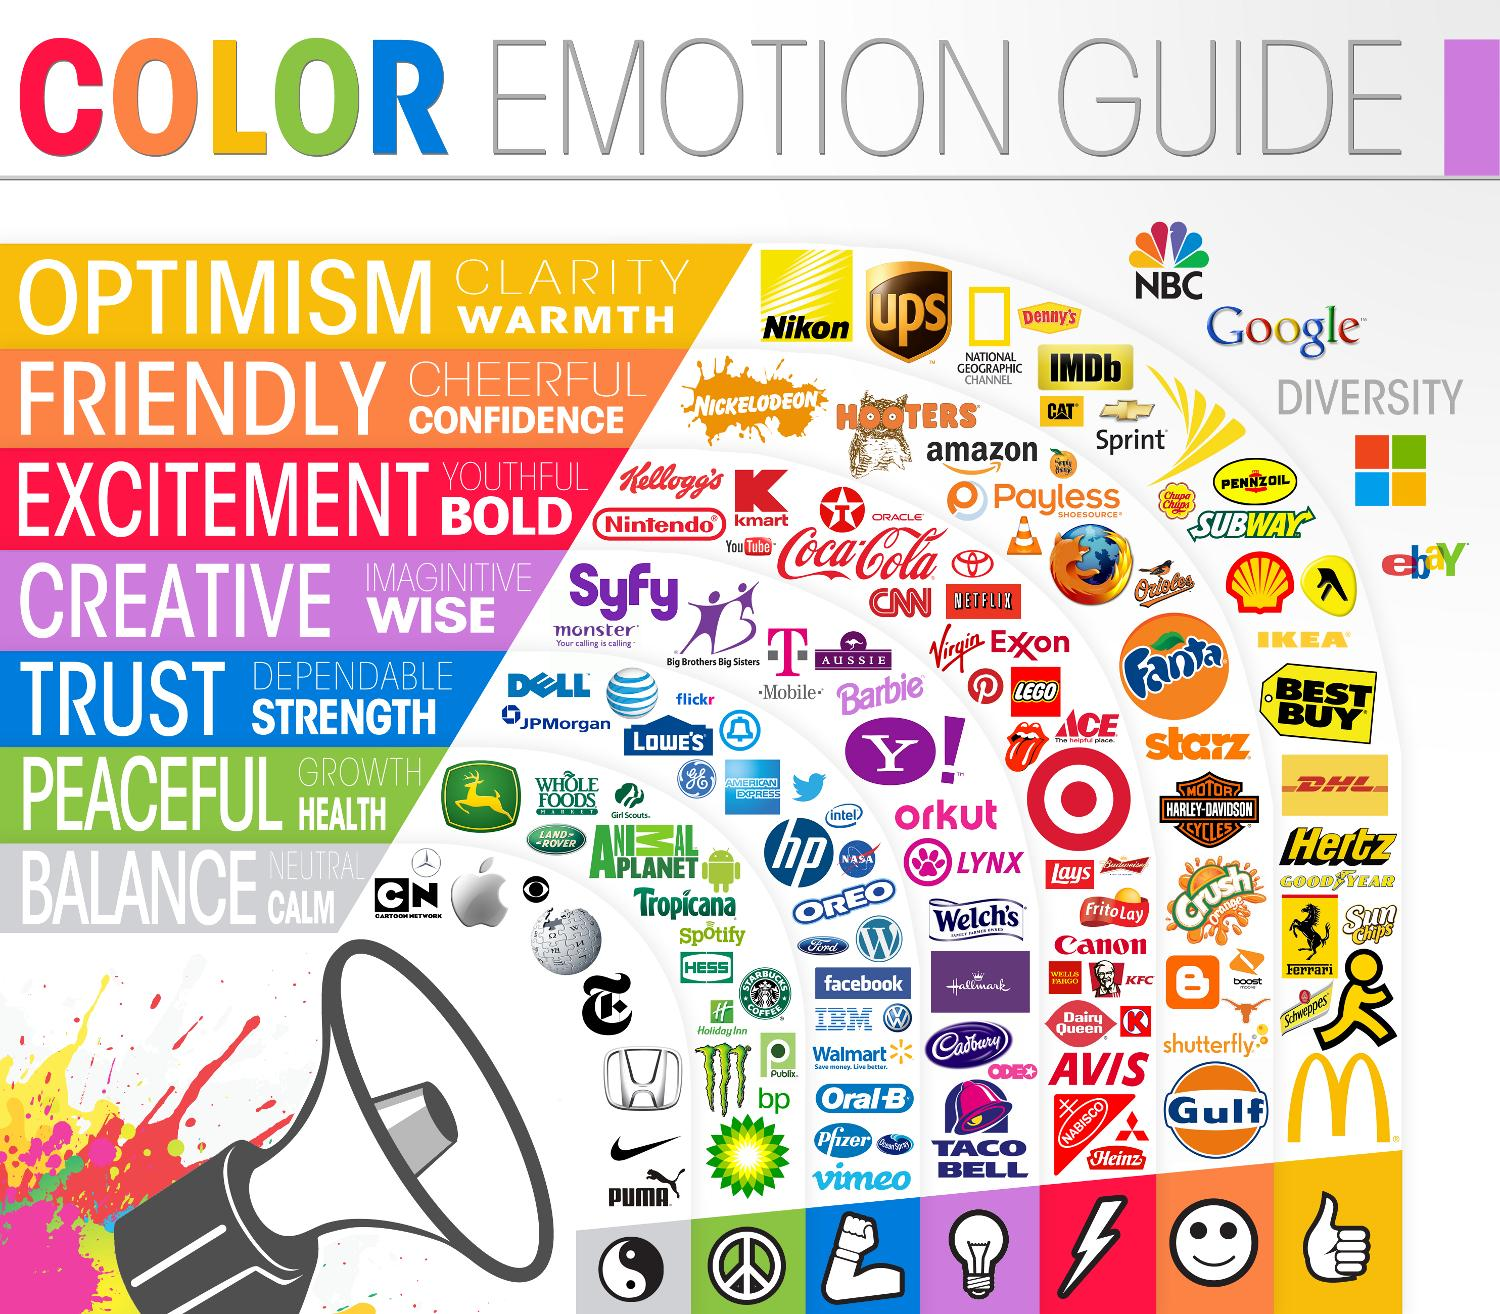 Color Emotions of National Brands